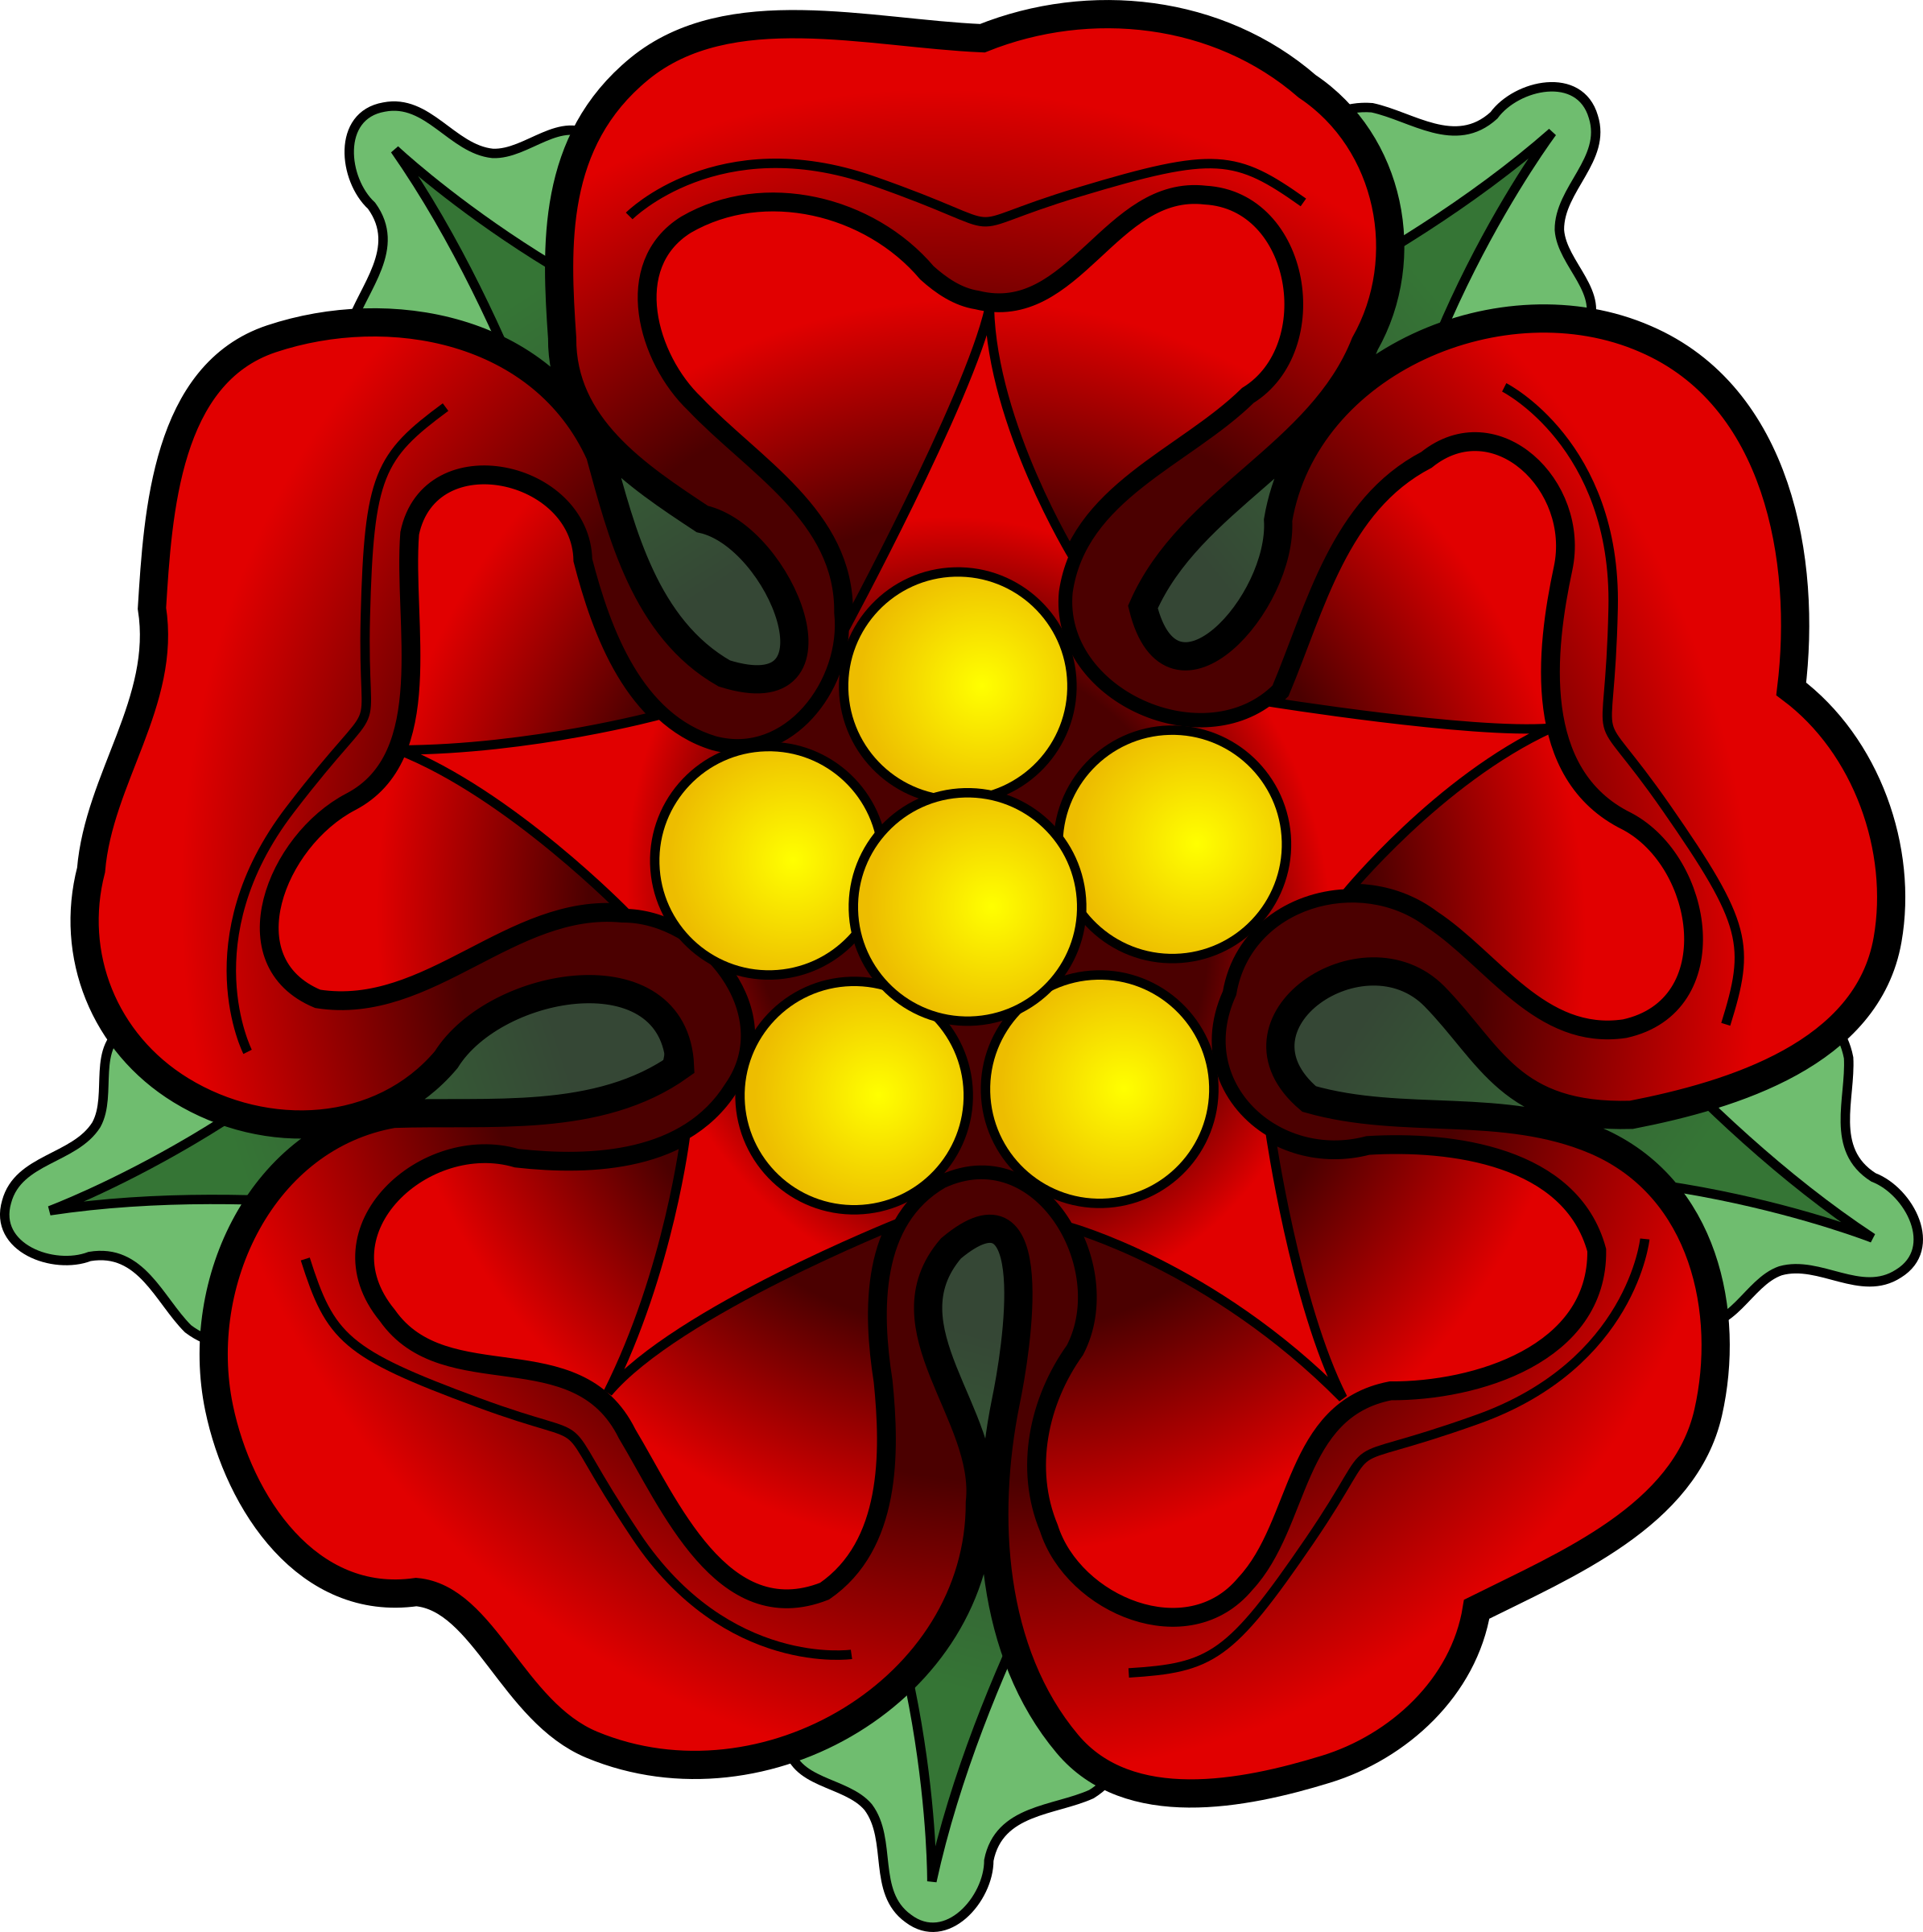 Mexican flowers png. Clipart heraldic rose big